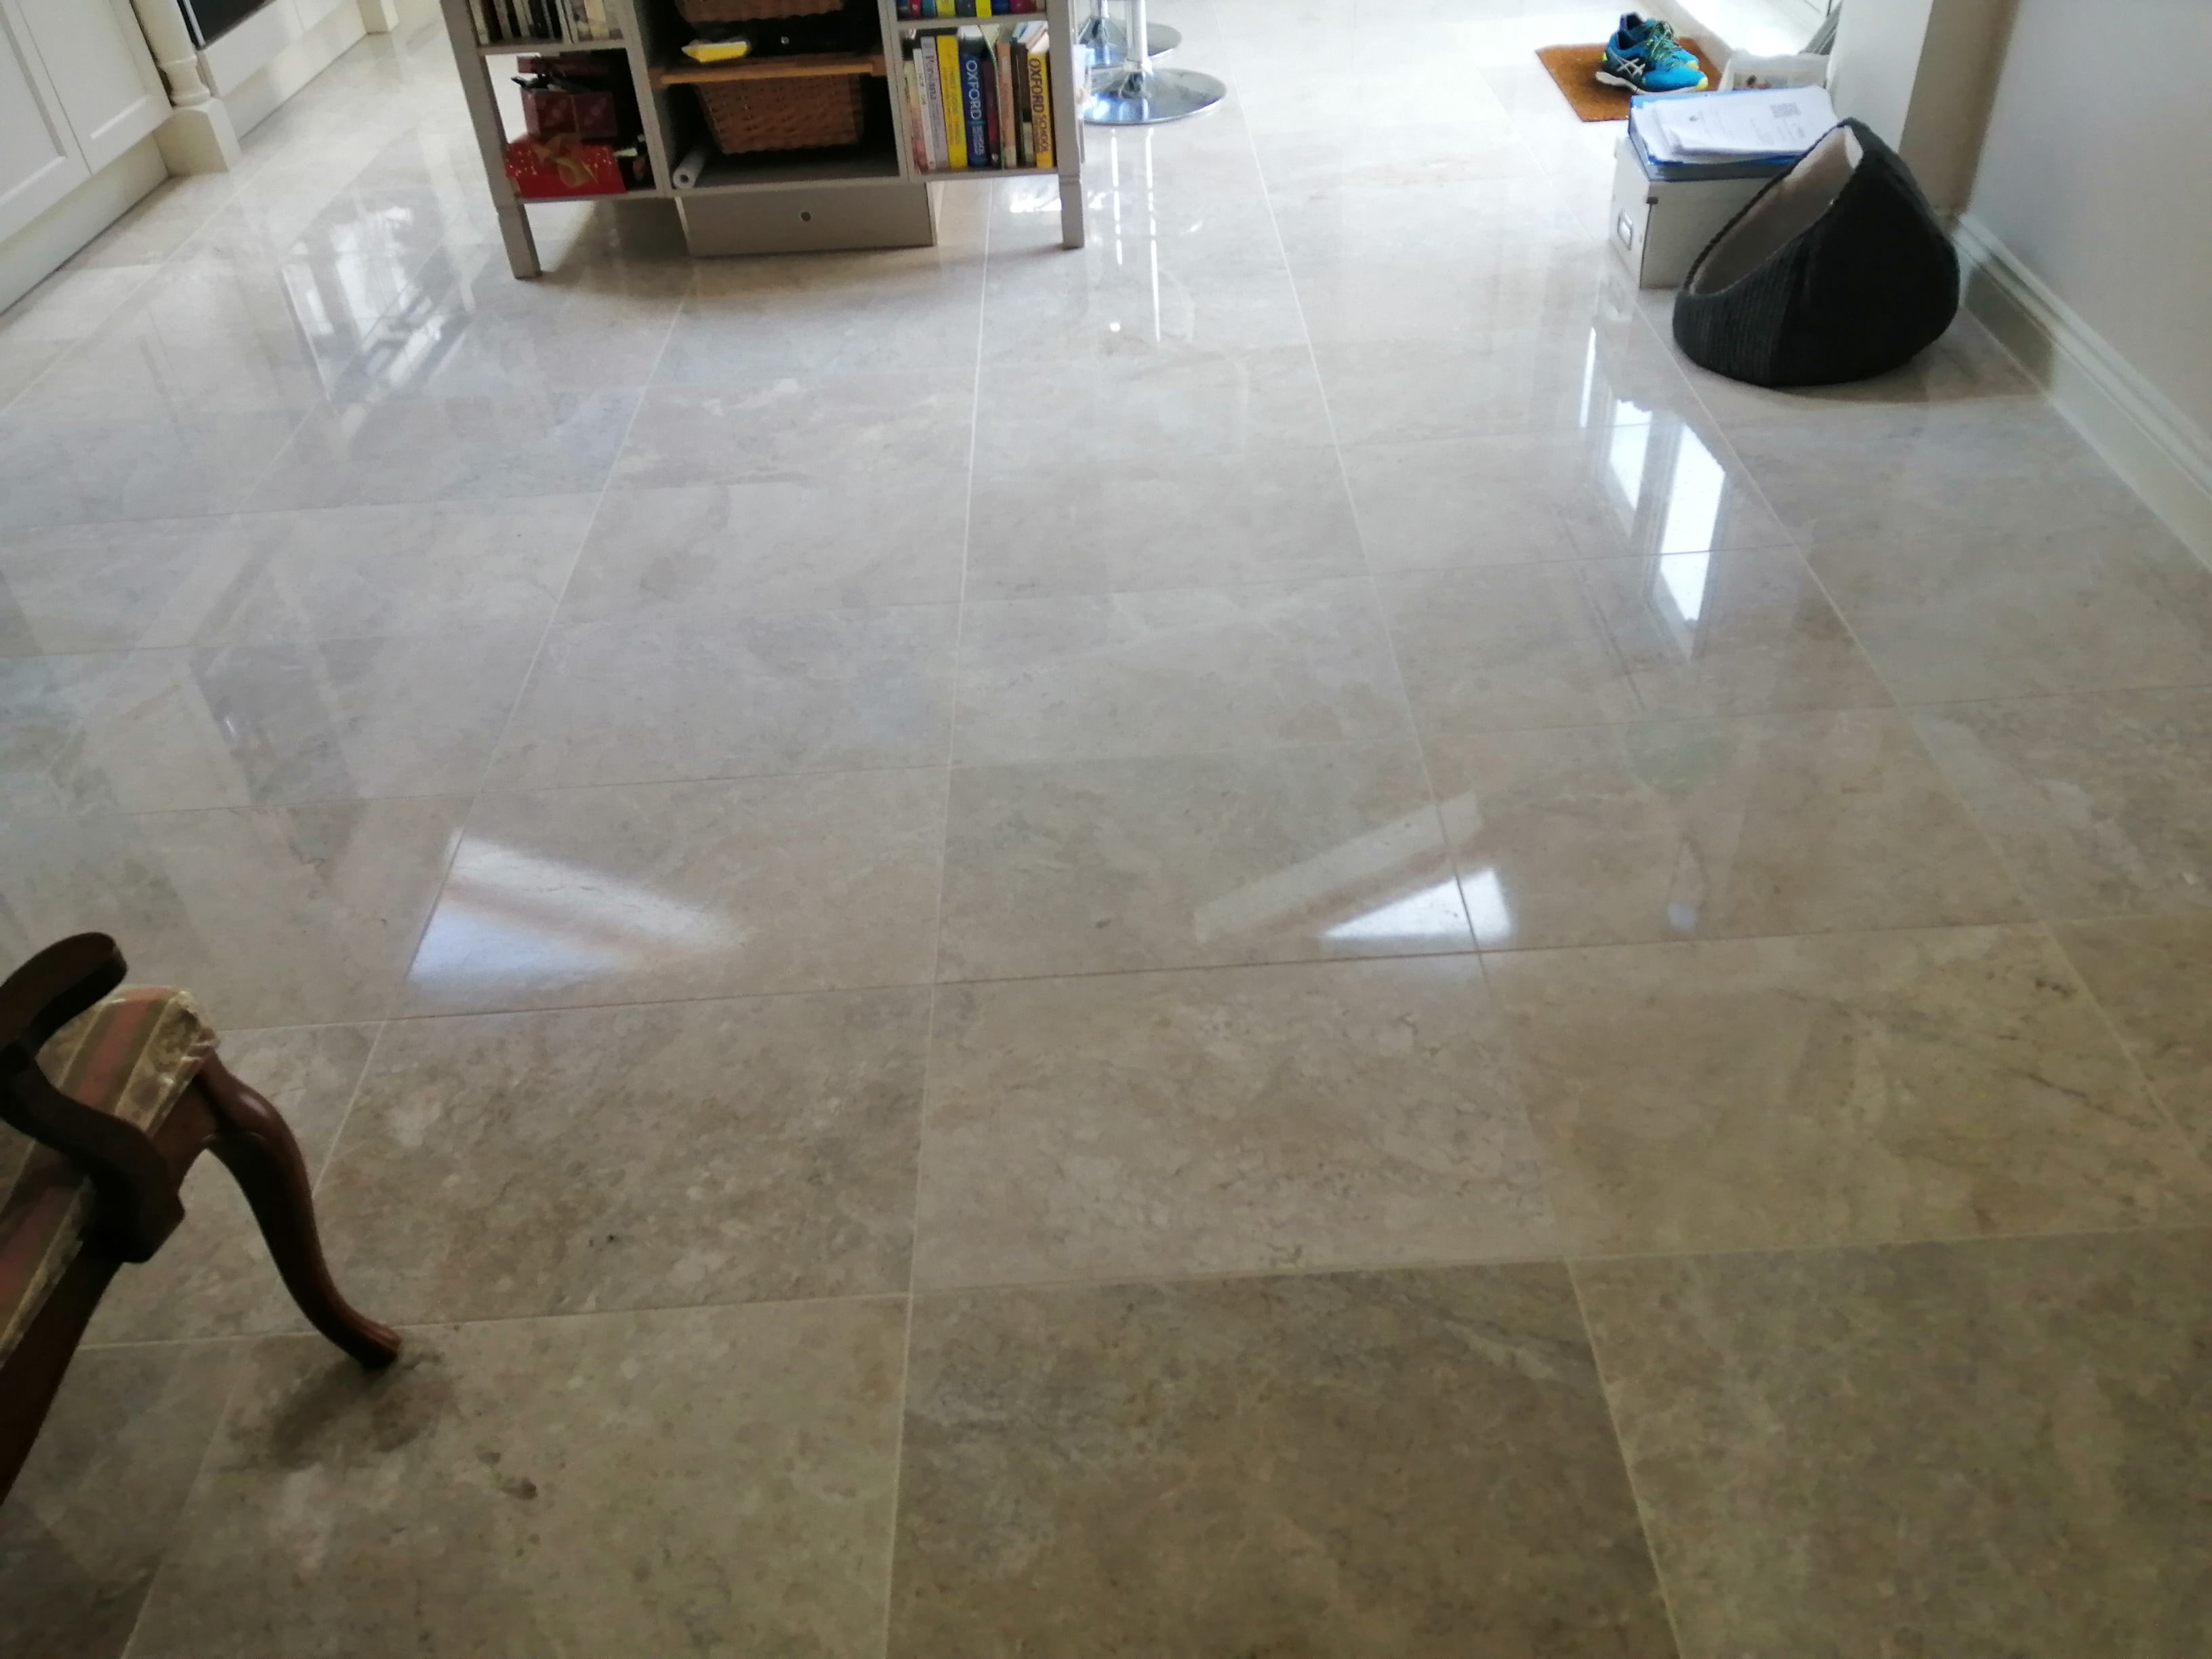 Marble Kitchen Floor After Renovation Cardiff